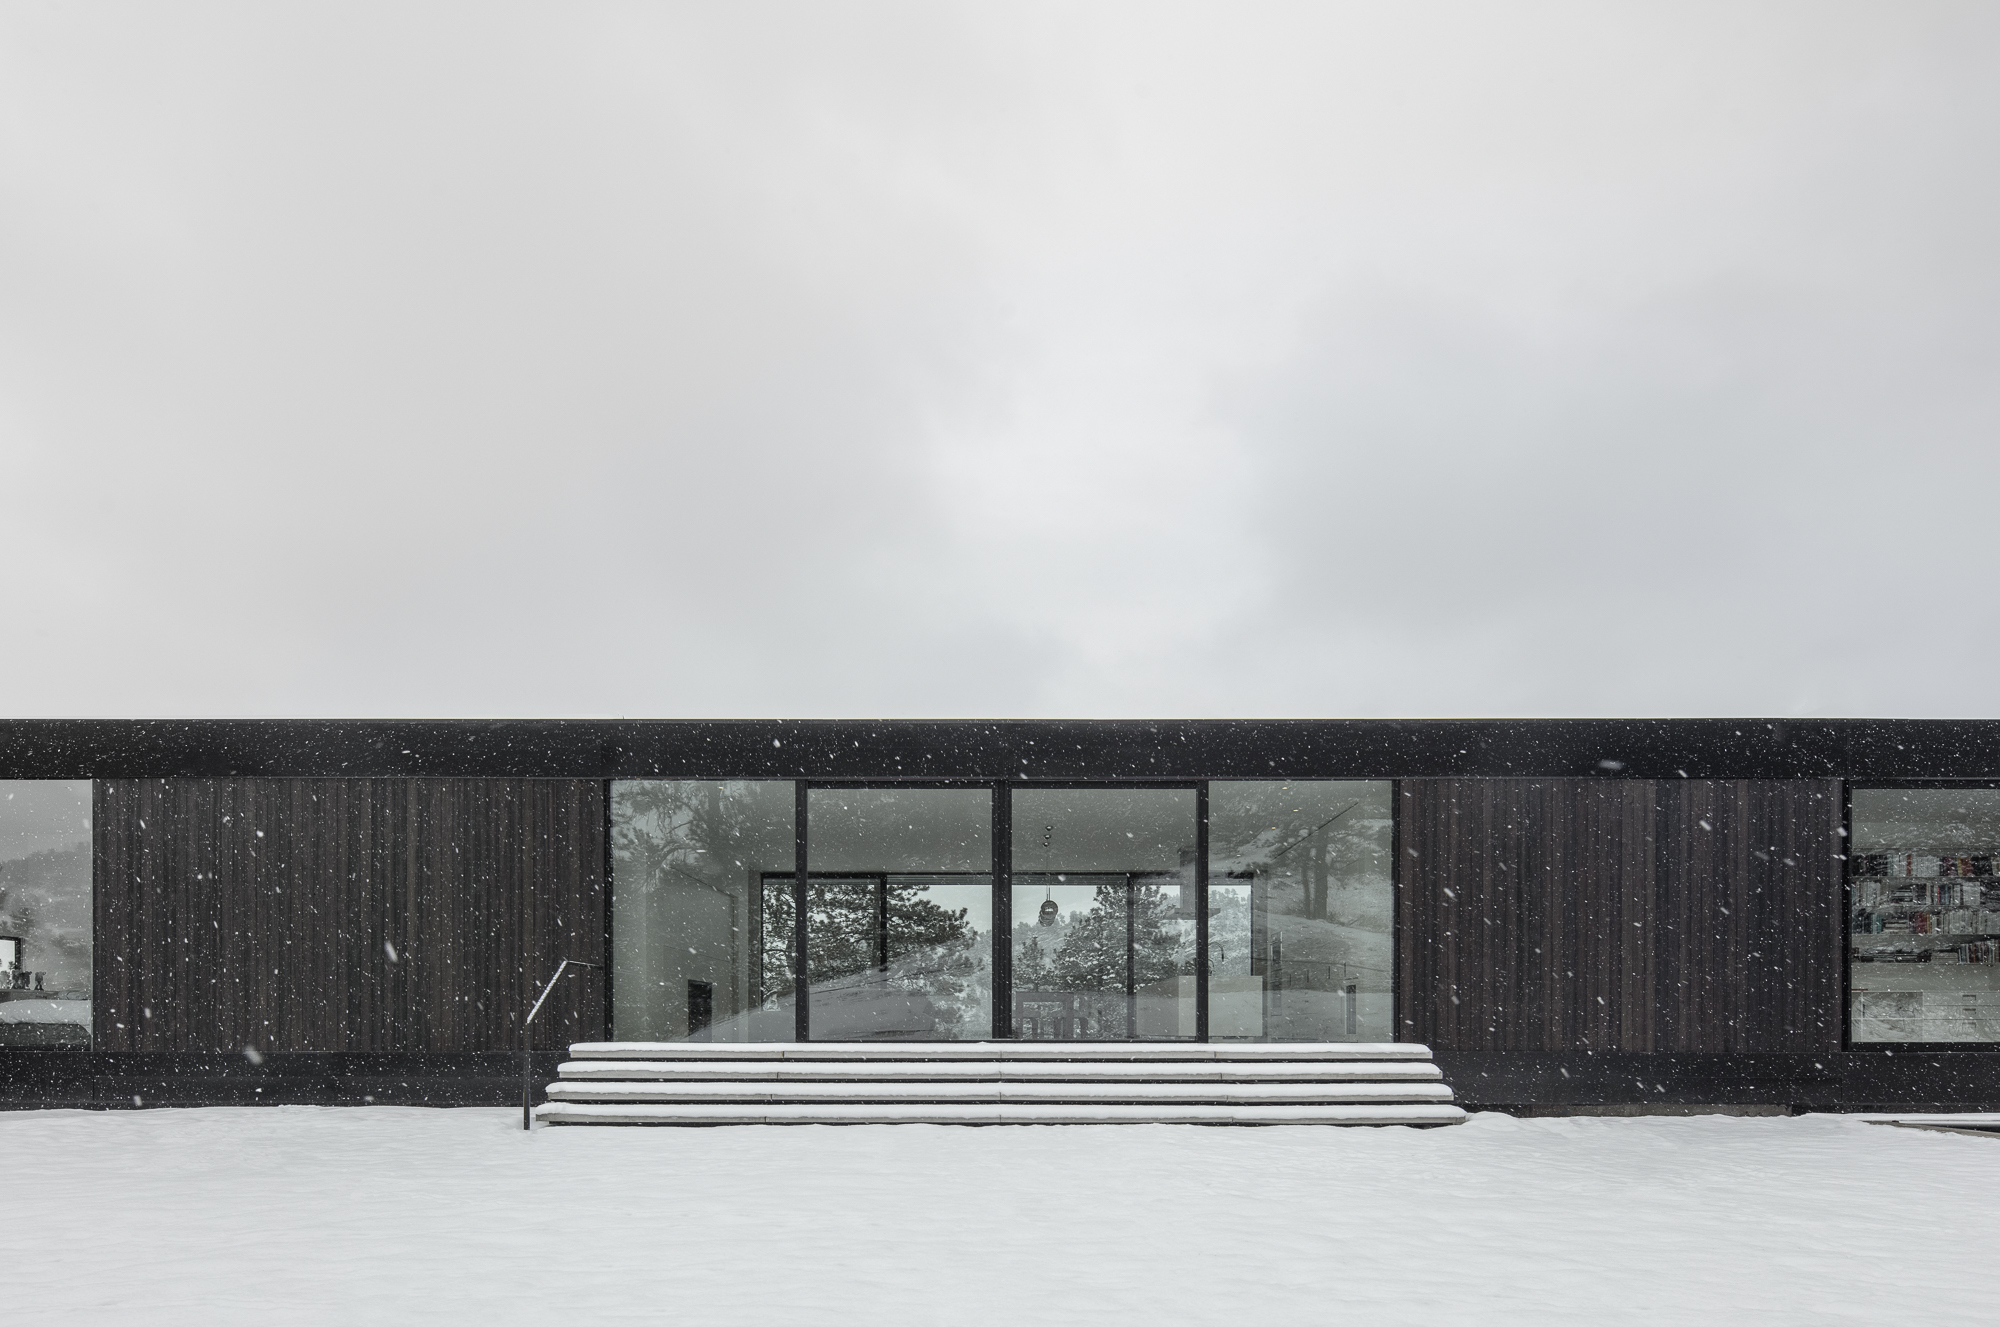 Studio B_Blur House_Winter_FINALS_10.jpg